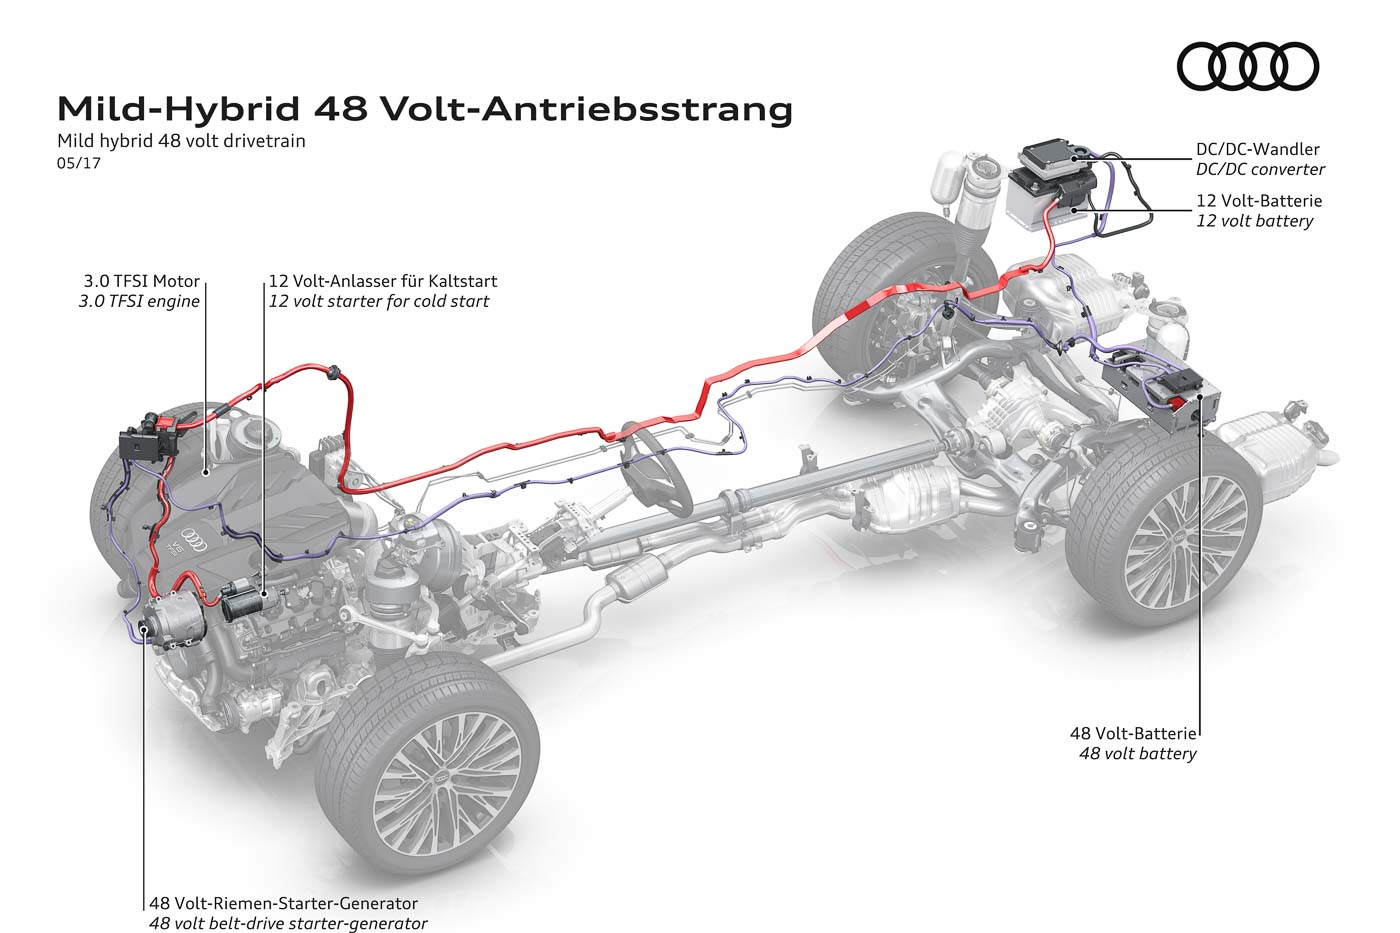 Mild Hybrid Engine Diagram Wire Data Schema Every Variant Of The Audi A8 D5 Will Be A High Civic